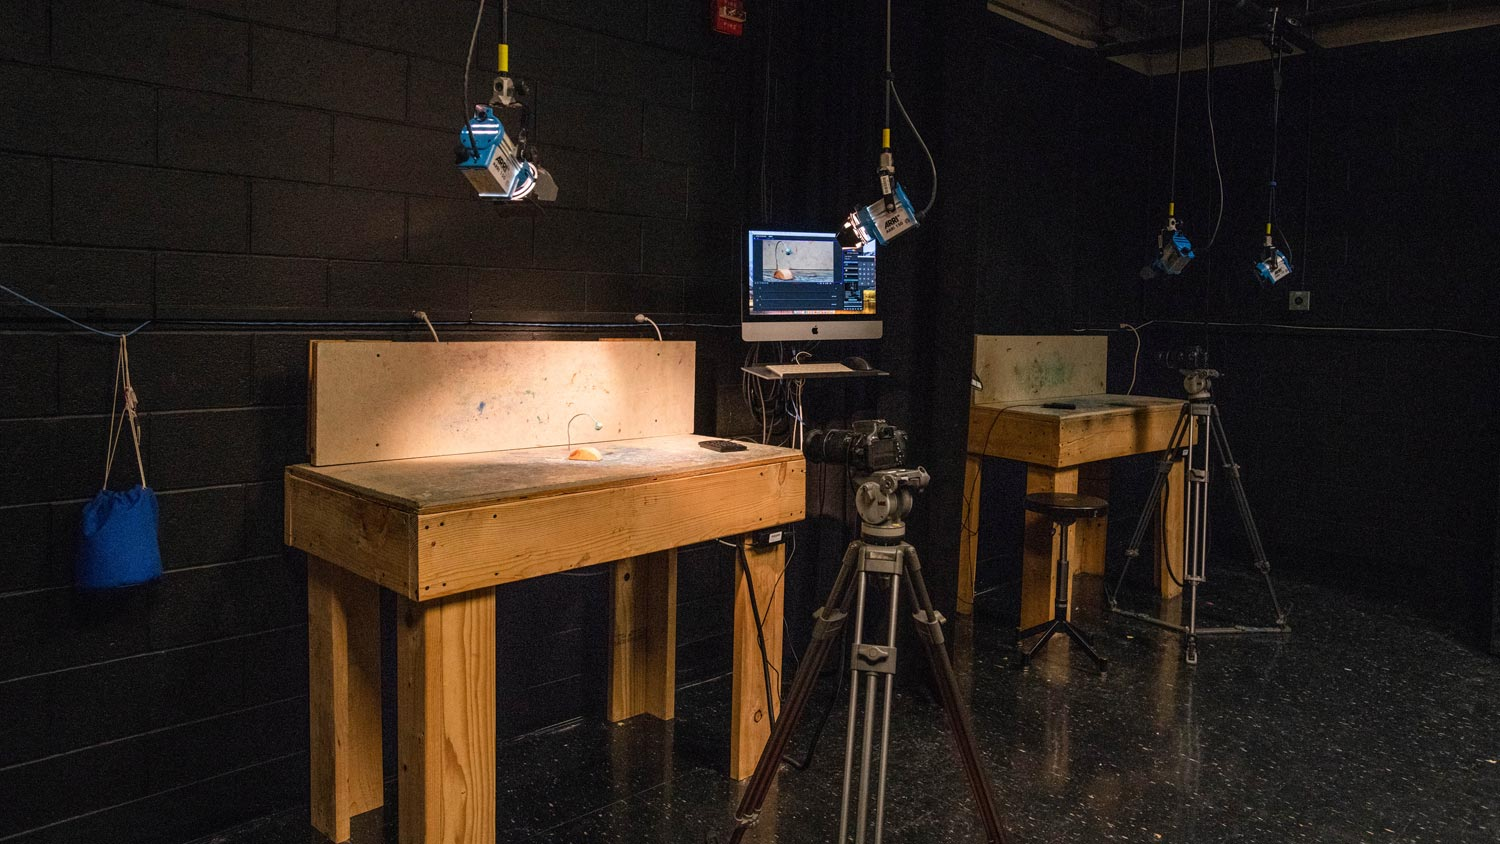 Stop motion film set in a black room with wooden stages and lights hanging from the ceiling